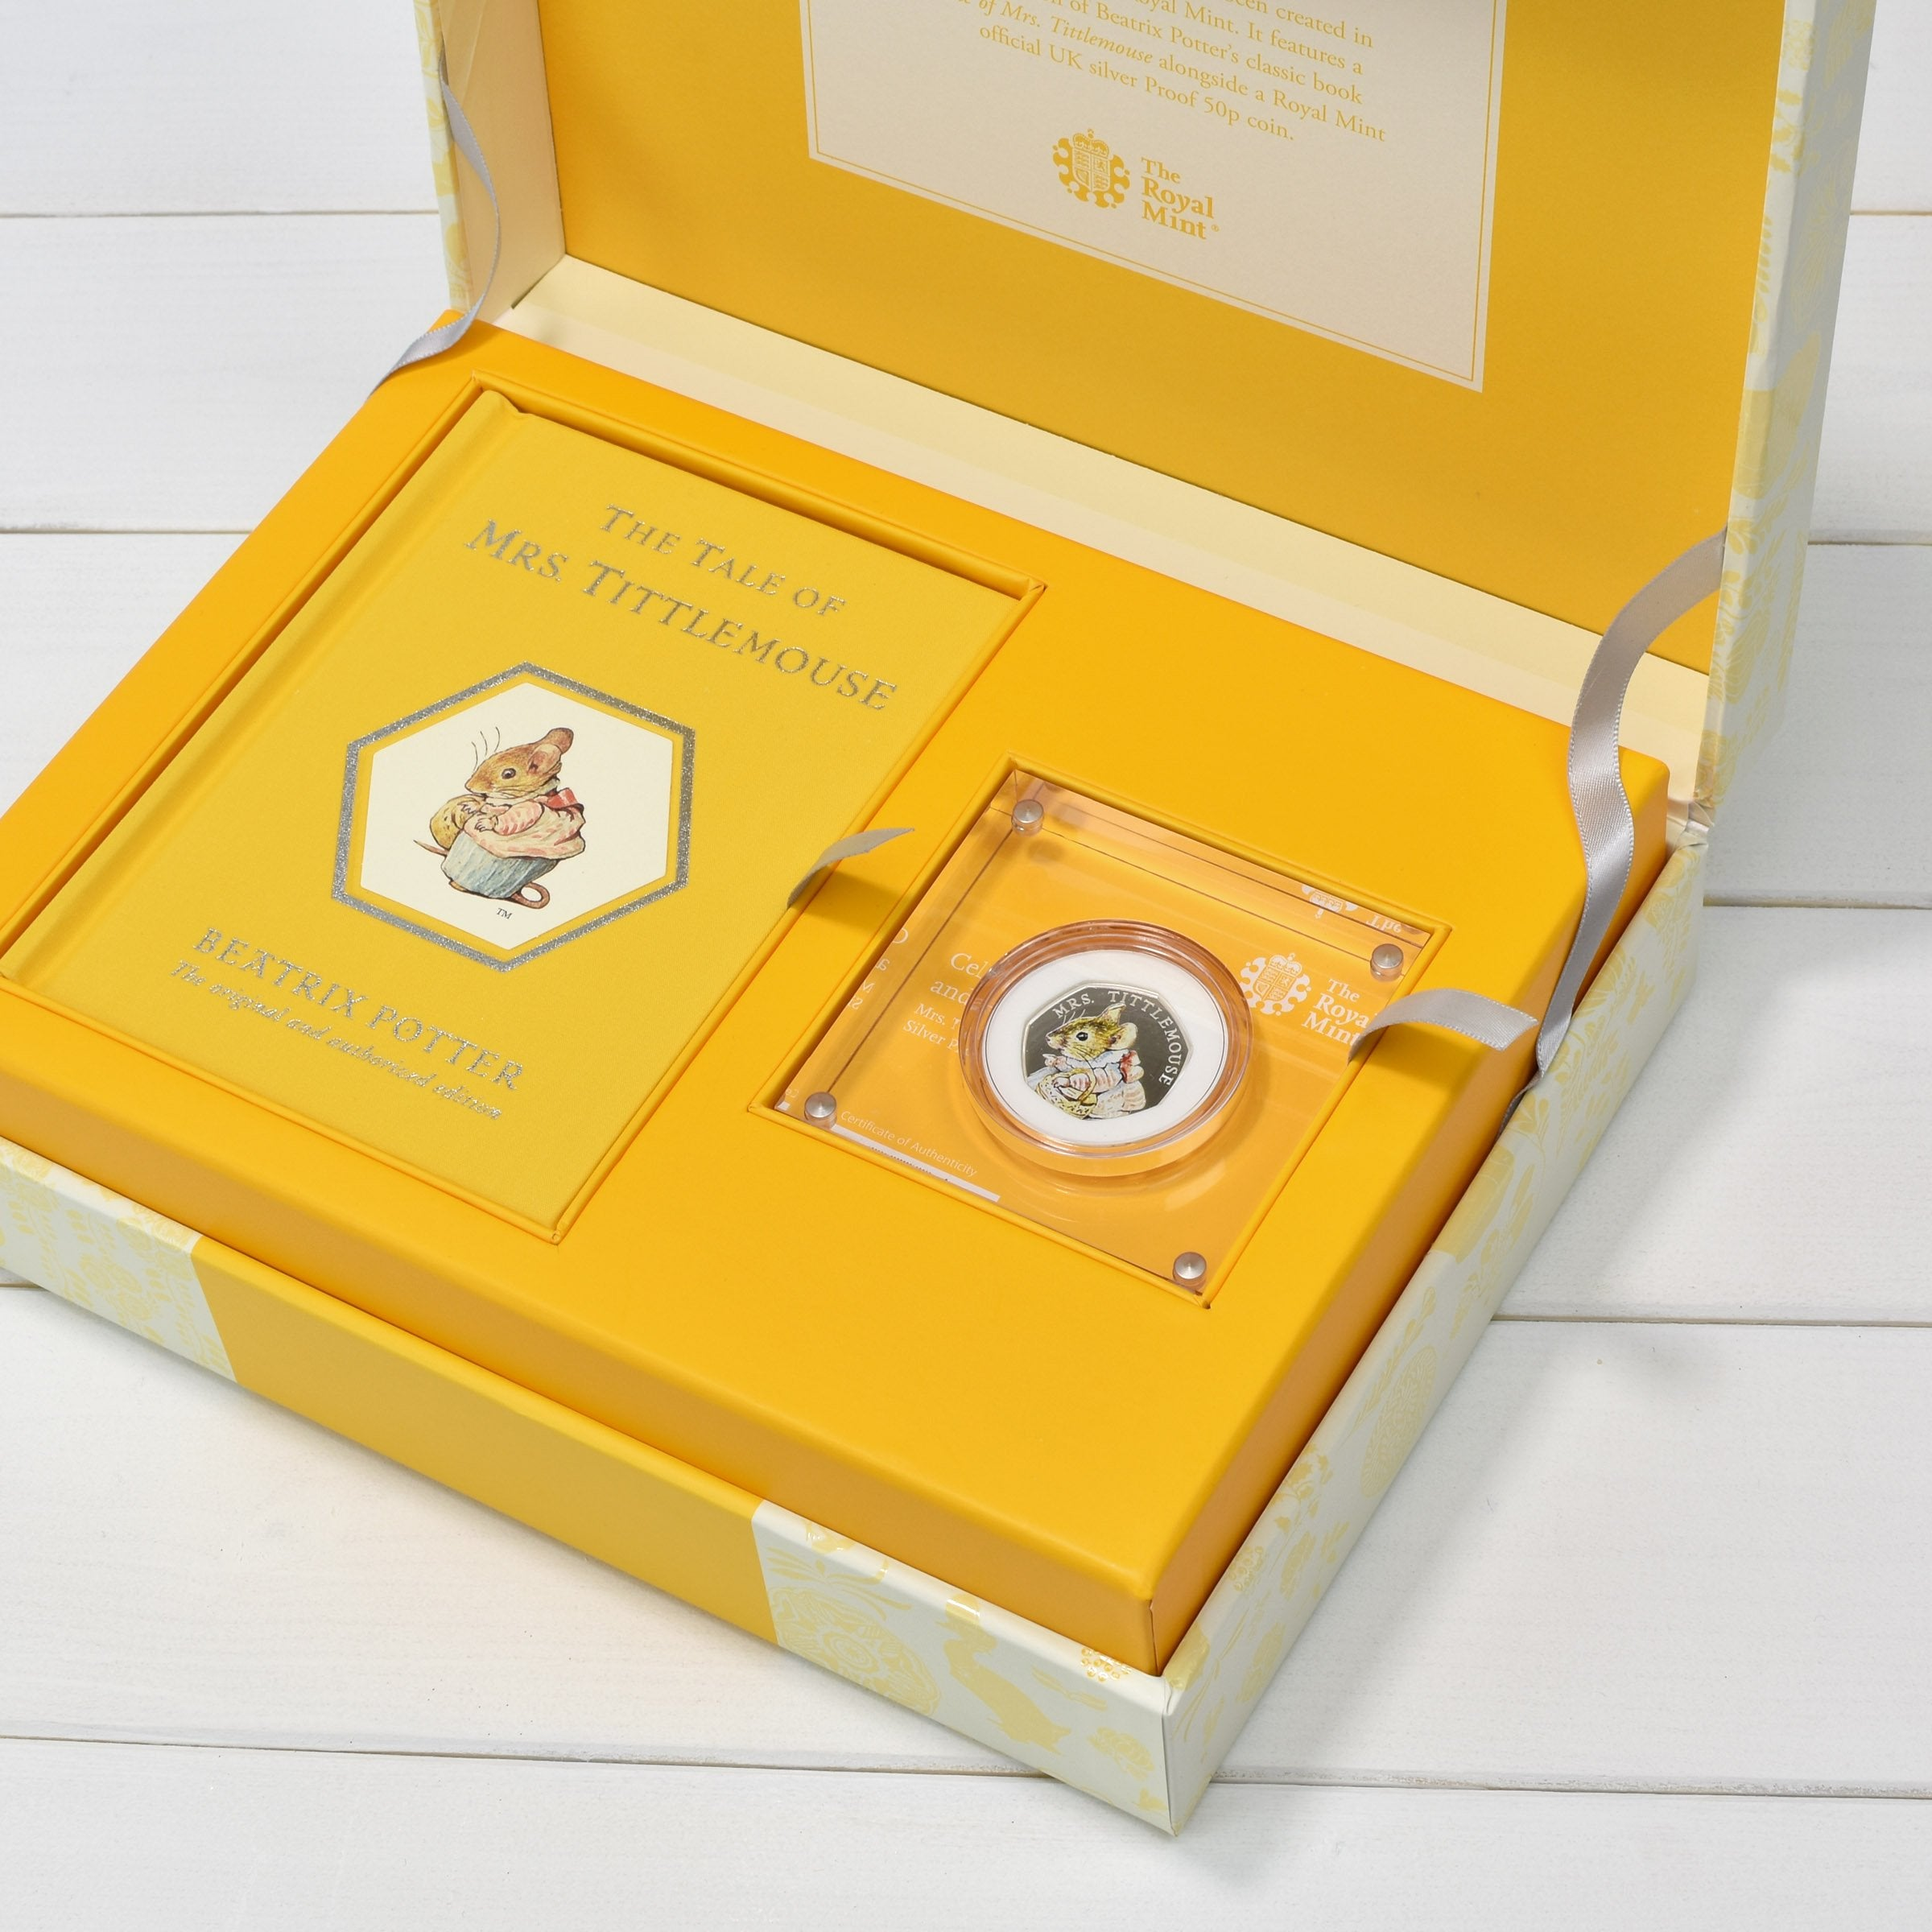 Mrs Tittlemouse Royal Mint Silver Proof Coin & Book Set - Shop Personalised Gifts